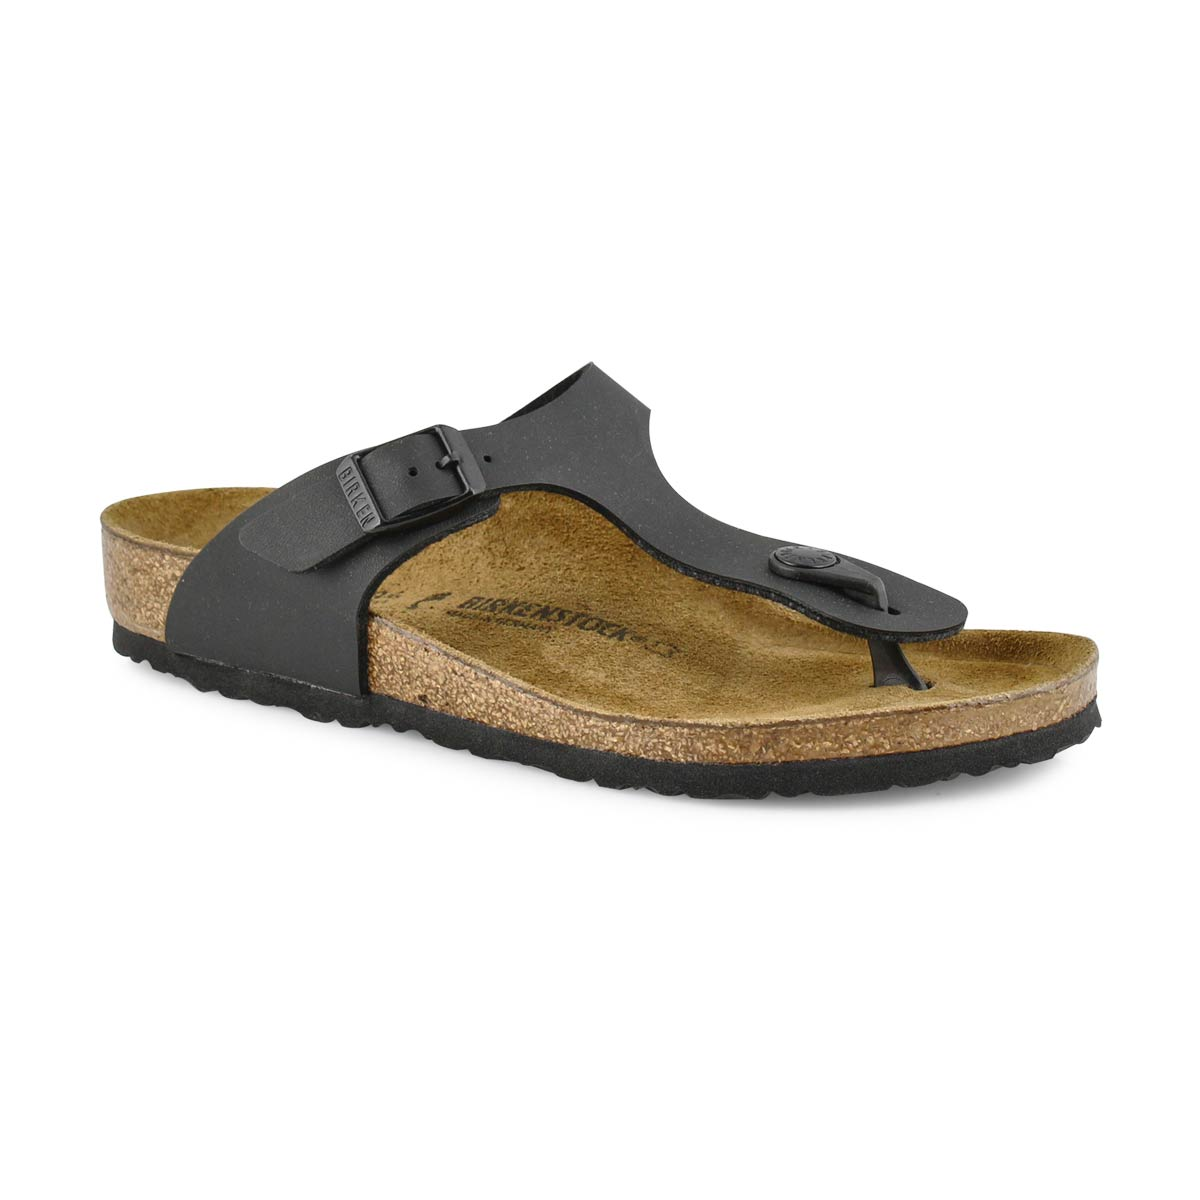 Grls Gizeh black BF thong sandal-Narrow